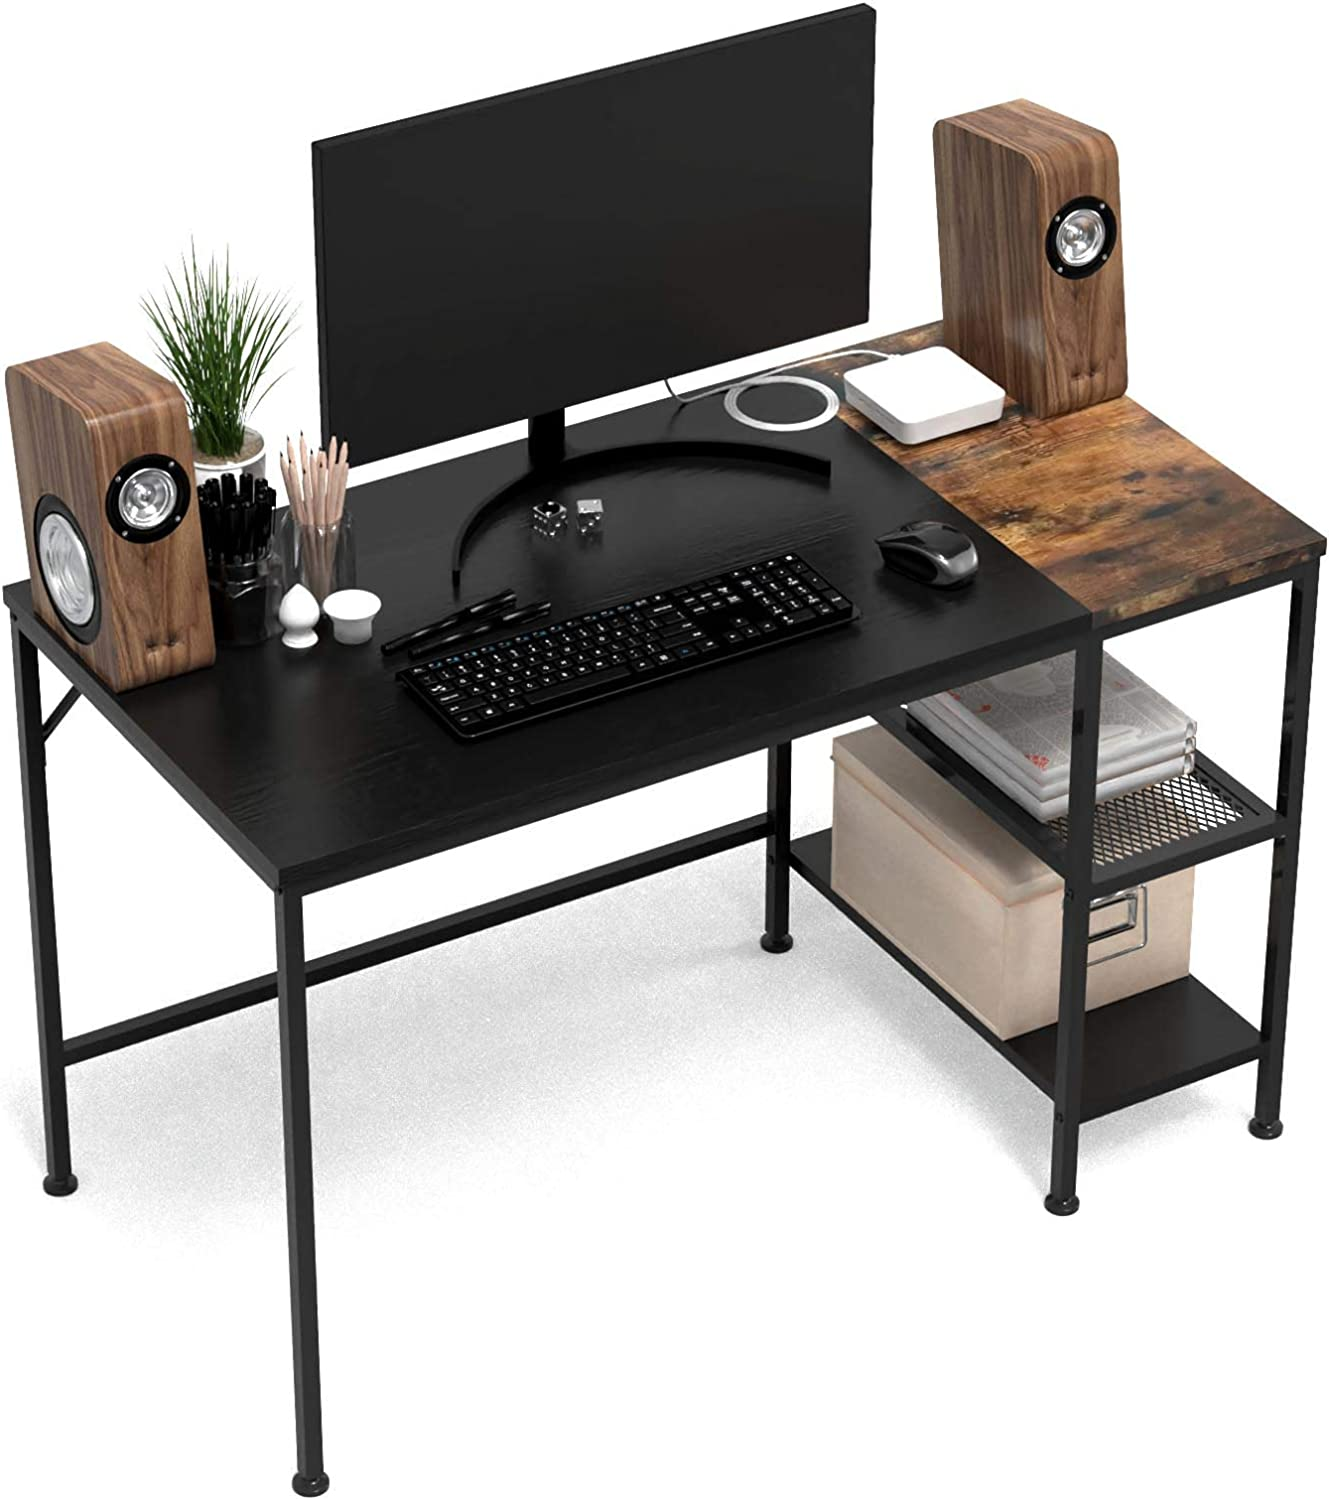 HOMIDEC Writing Computer Desk with Storage Shelves, Office Work Desk for Small Spaces, Writing Study, Industry Modern Table for Bedroom, Home, Office(39.7x23.6x29.5 inch)